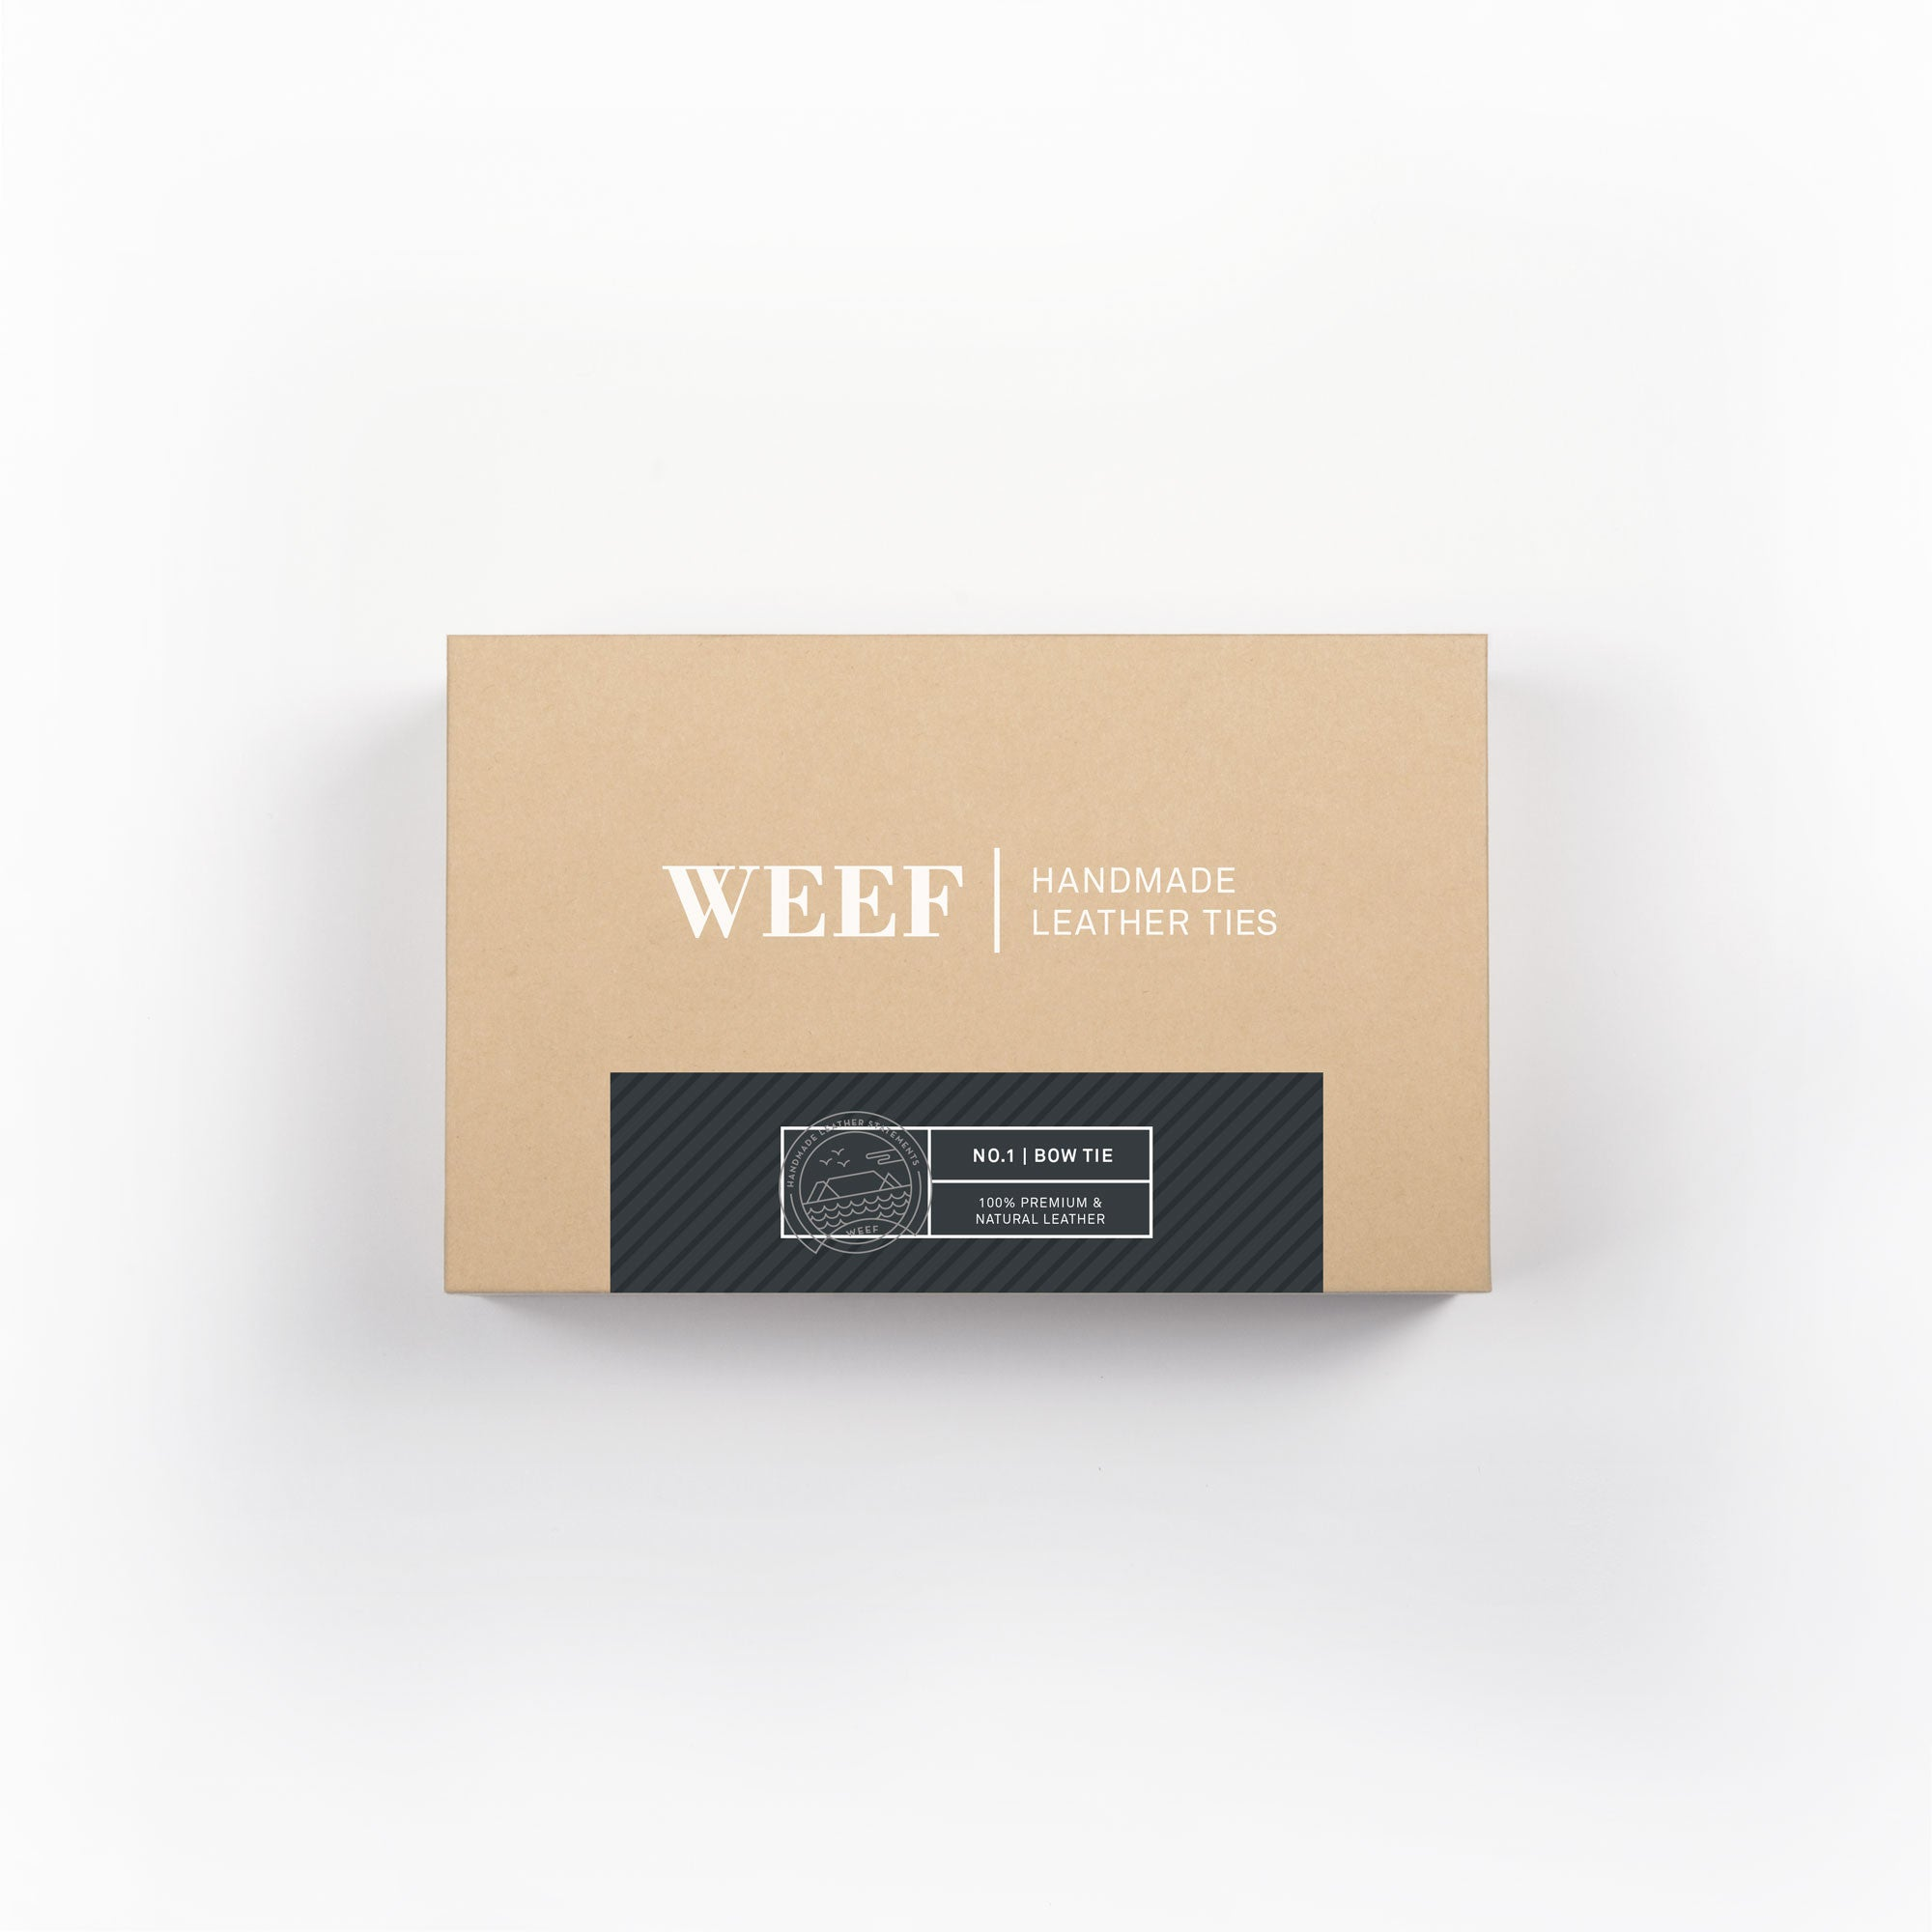 This is the premium packaging box of the pepper grey WEEF handmade leather bow tie.